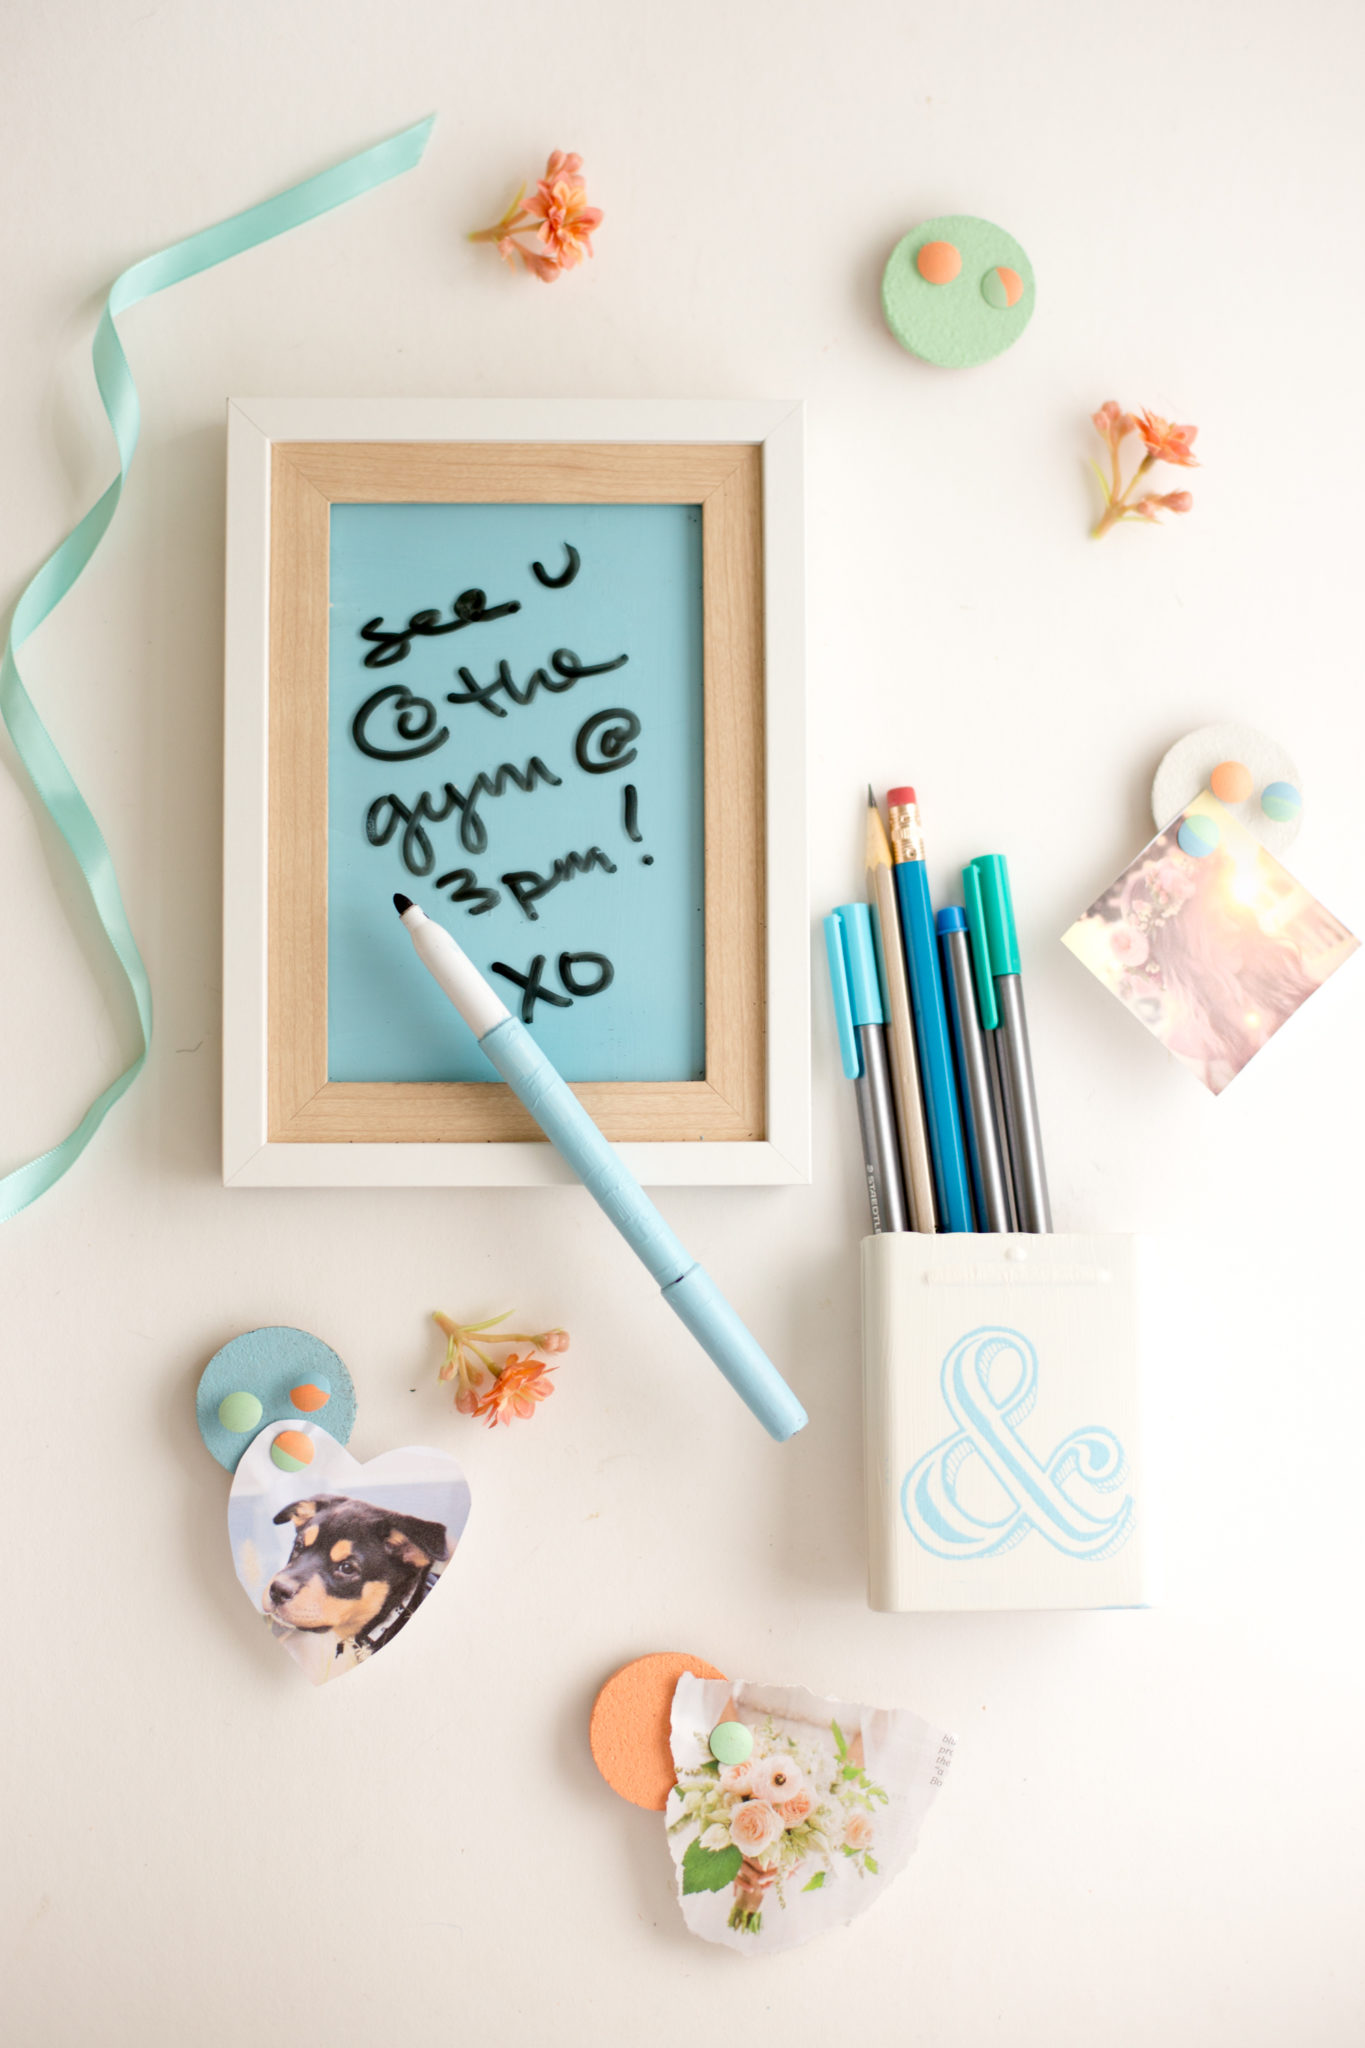 Diy Locker Decorations Dry Erase Board Pencil Cup Flax